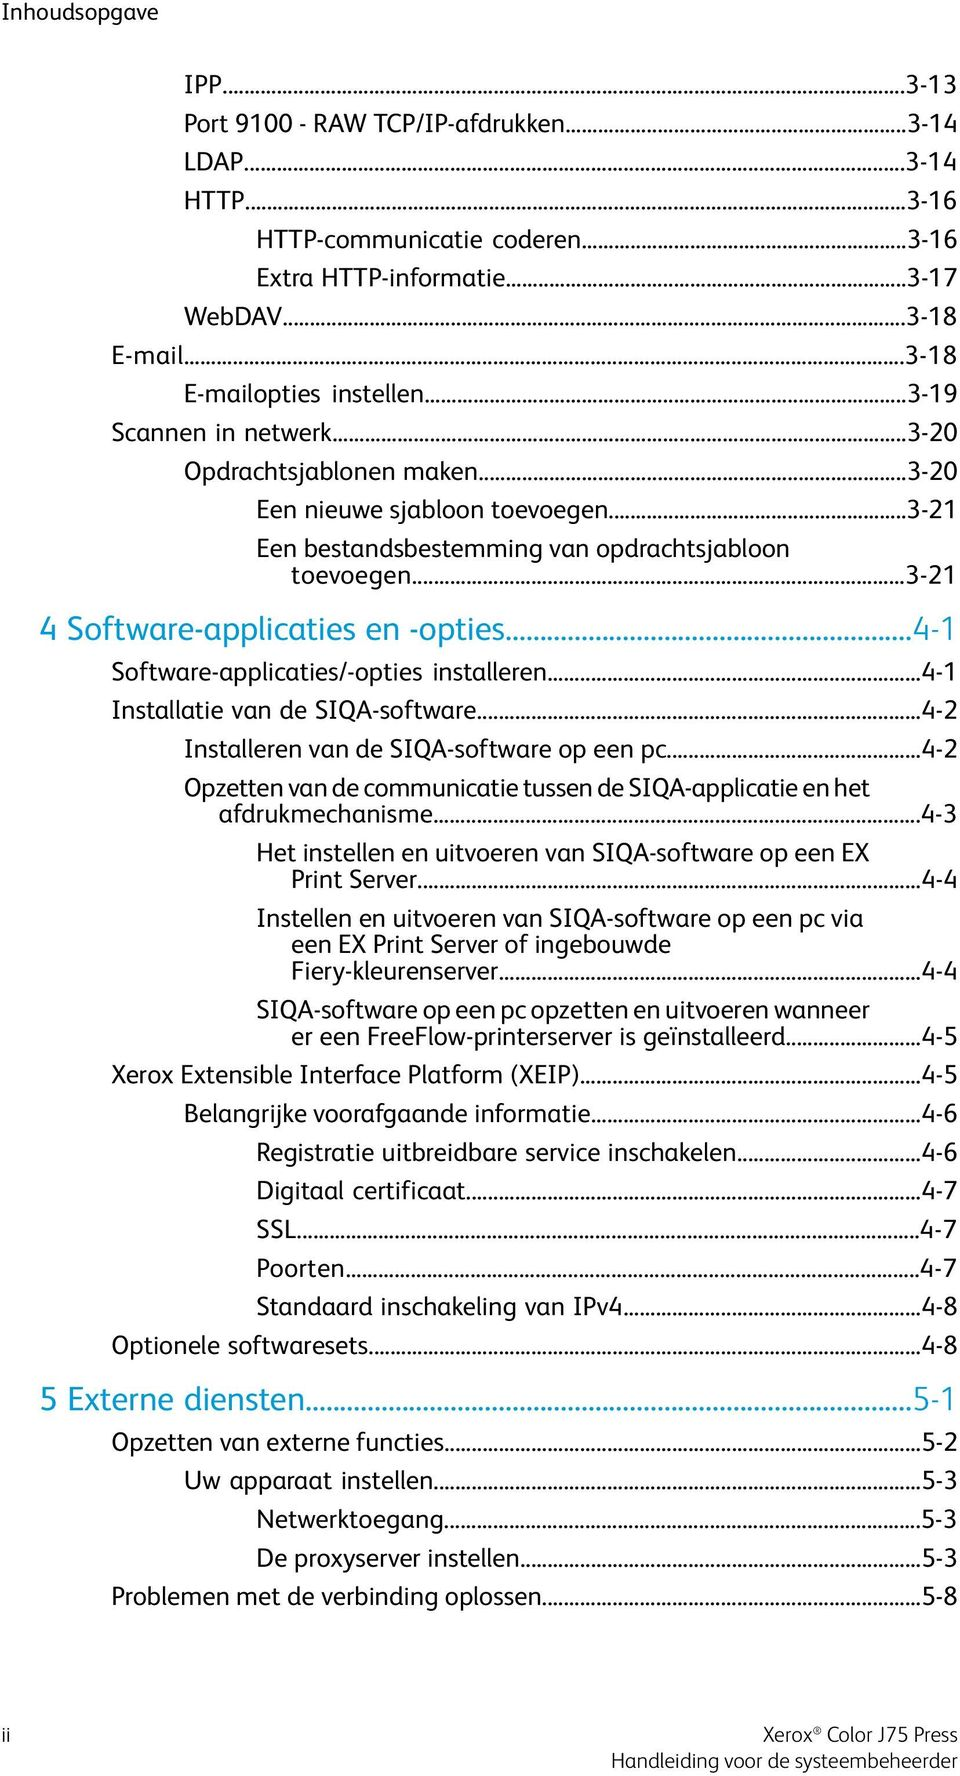 ..4-1 Software-applicaties/-opties installeren...4-1 Installatie van de SIQA-software...4-2 Installeren van de SIQA-software op een pc.